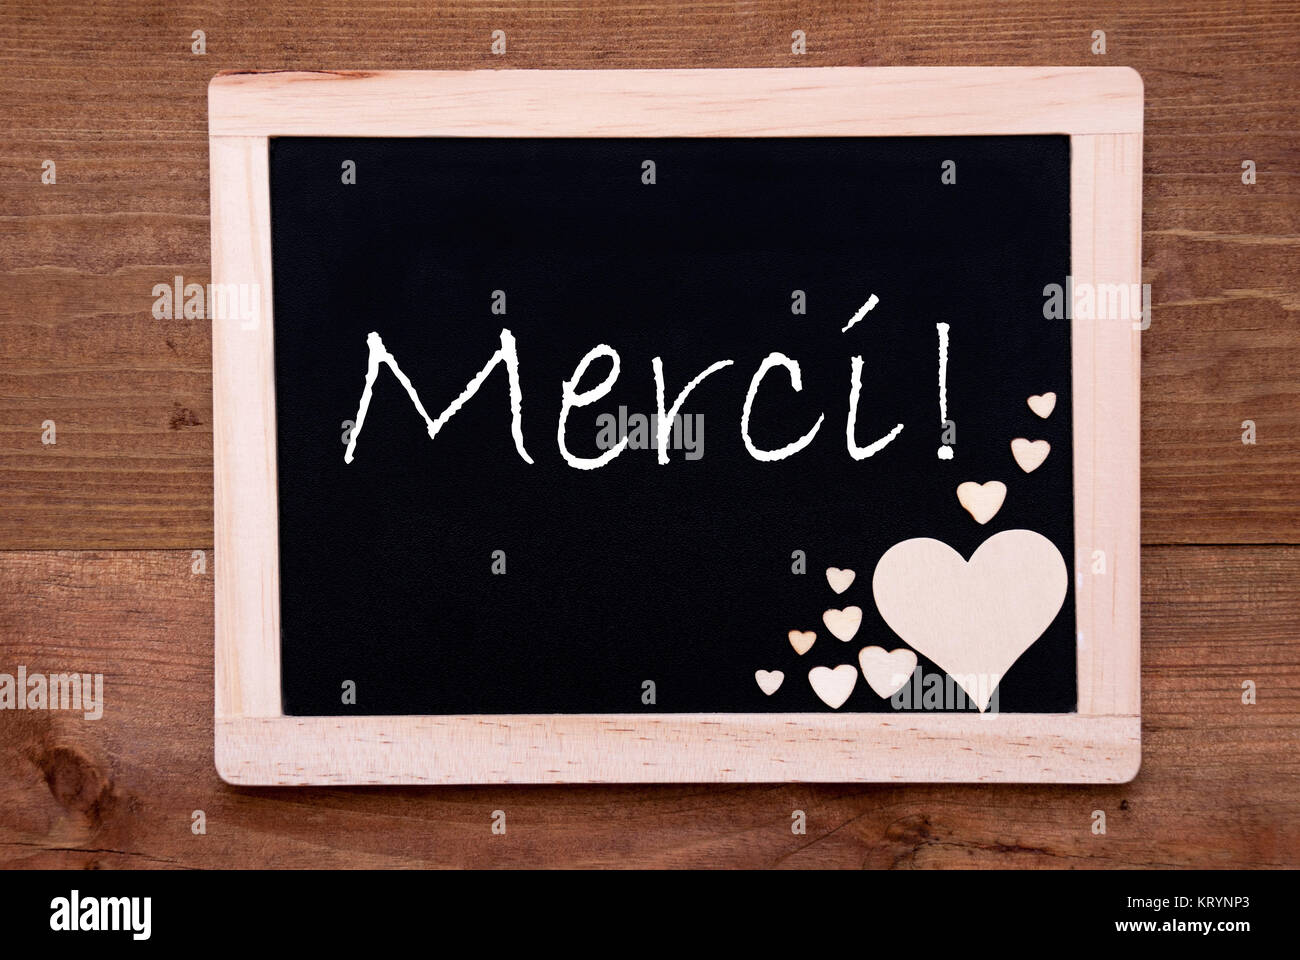 Sign French Text Merci Means Stockfotos & Sign French Text